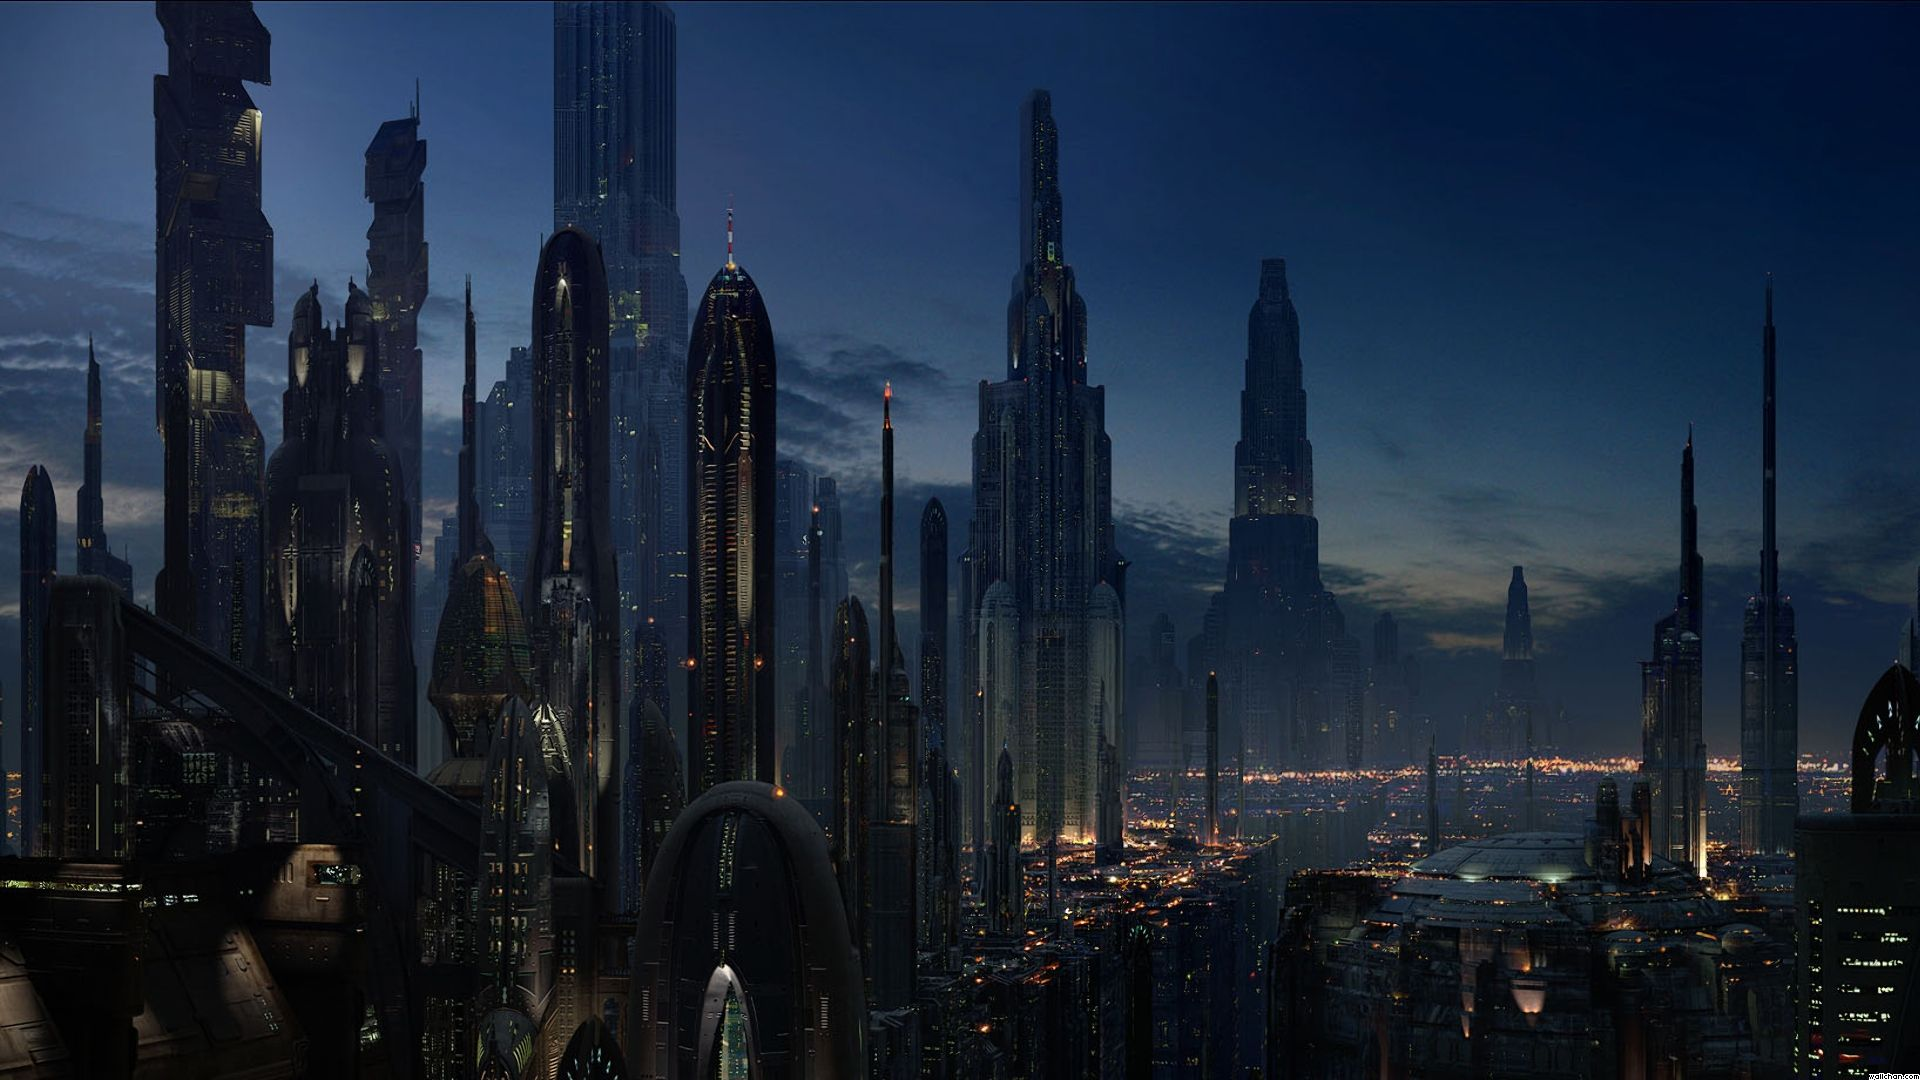 Futuristic City Wallpaper 9 Futuristic City City Wallpaper Future City